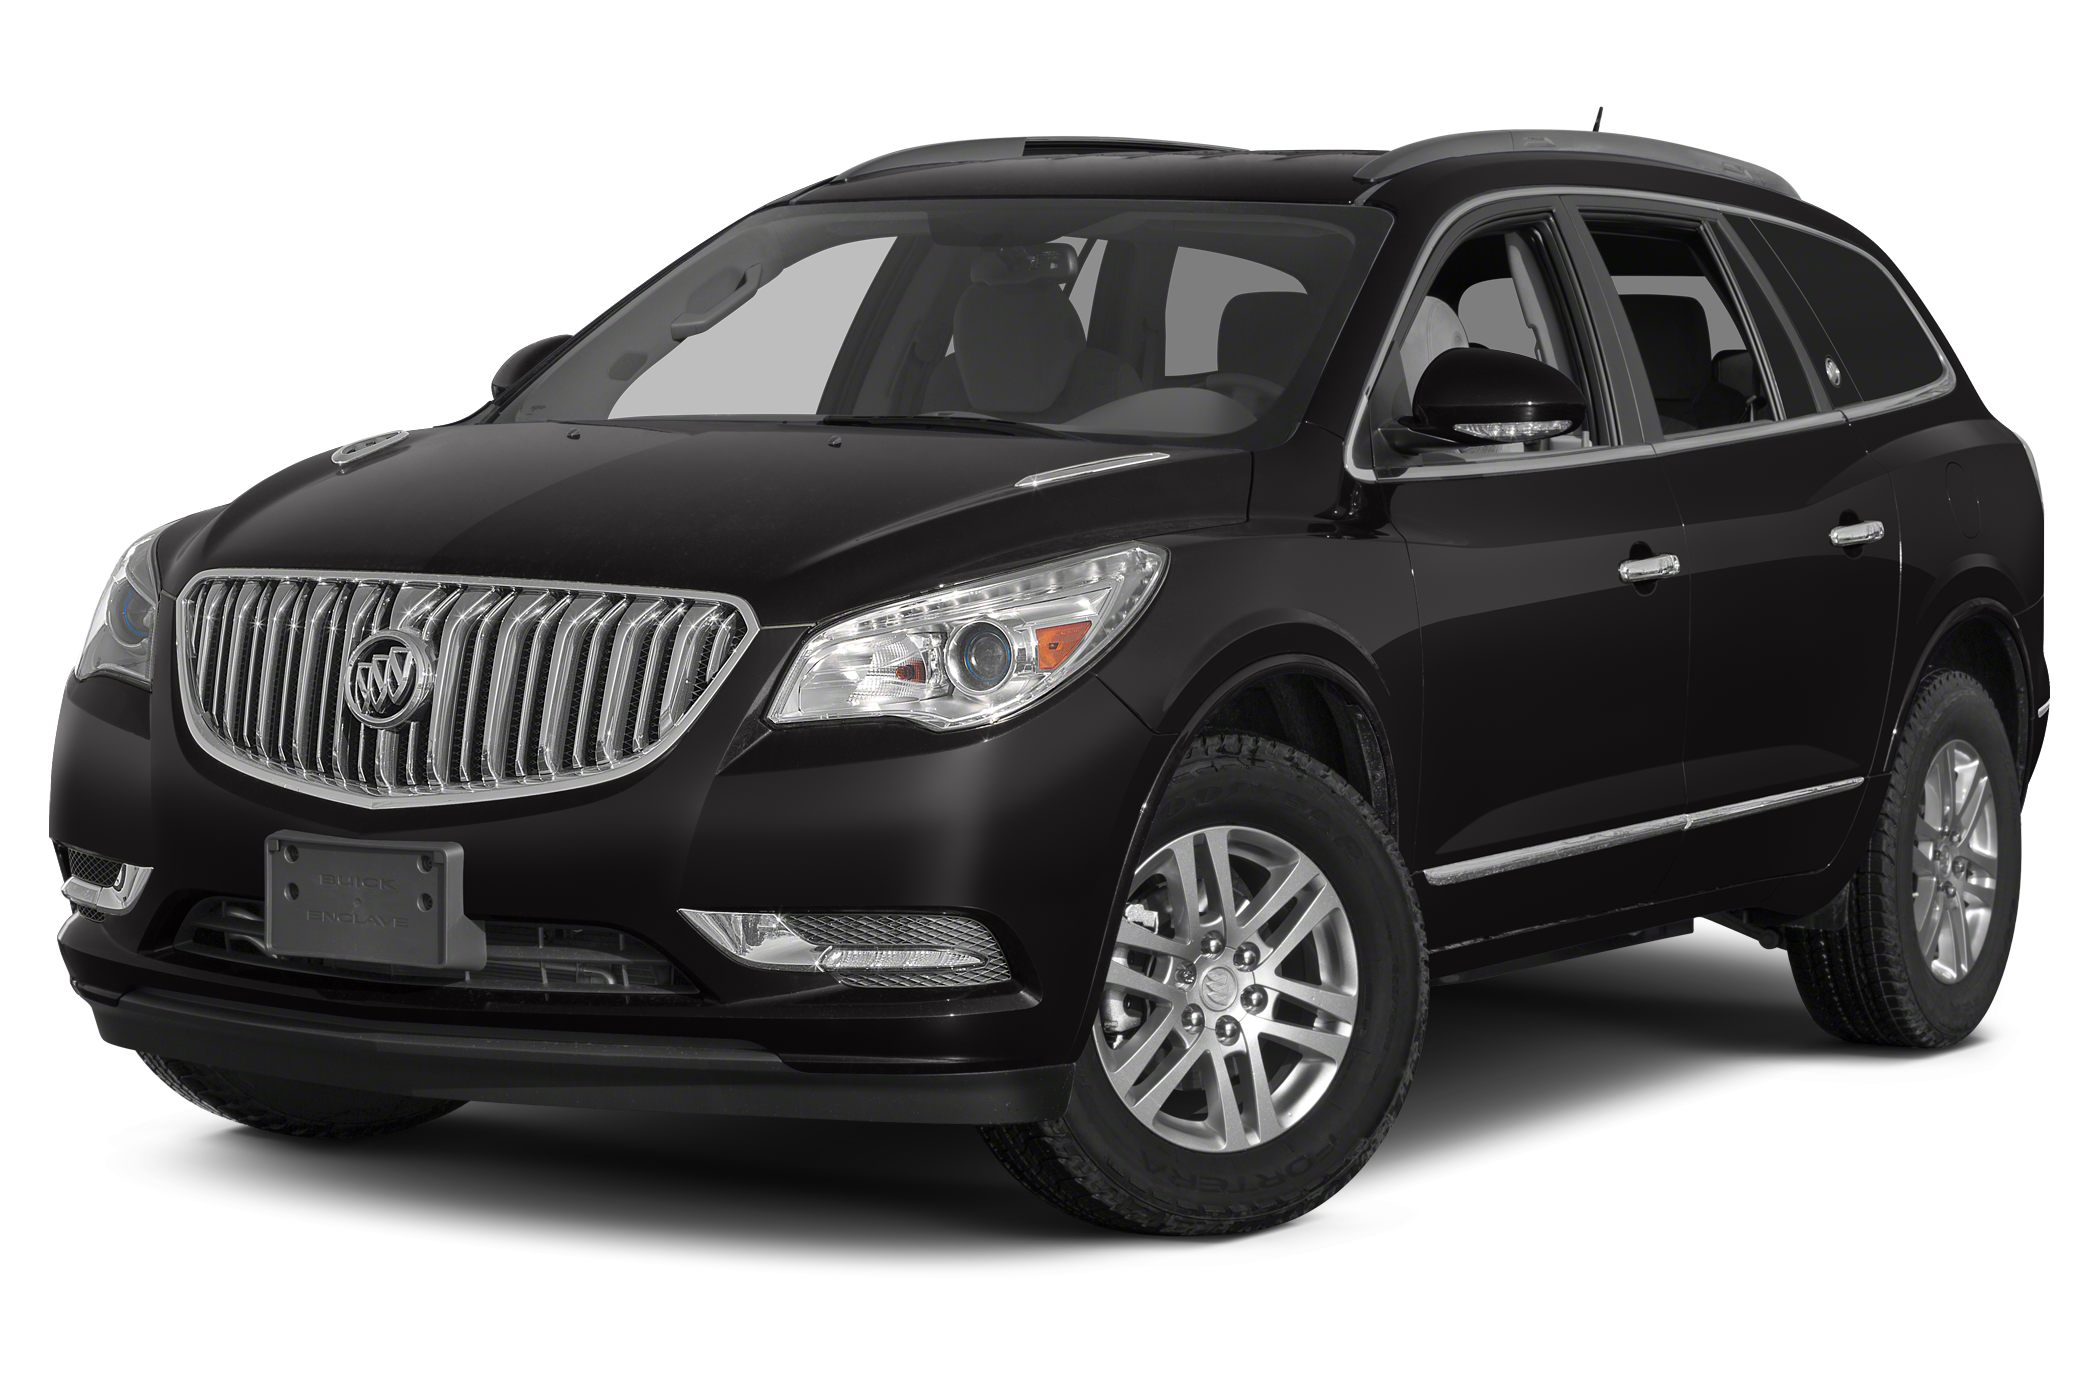 2014 Buick Enclave Premium SUV for sale in Franklin for $52,580 with 0 miles.